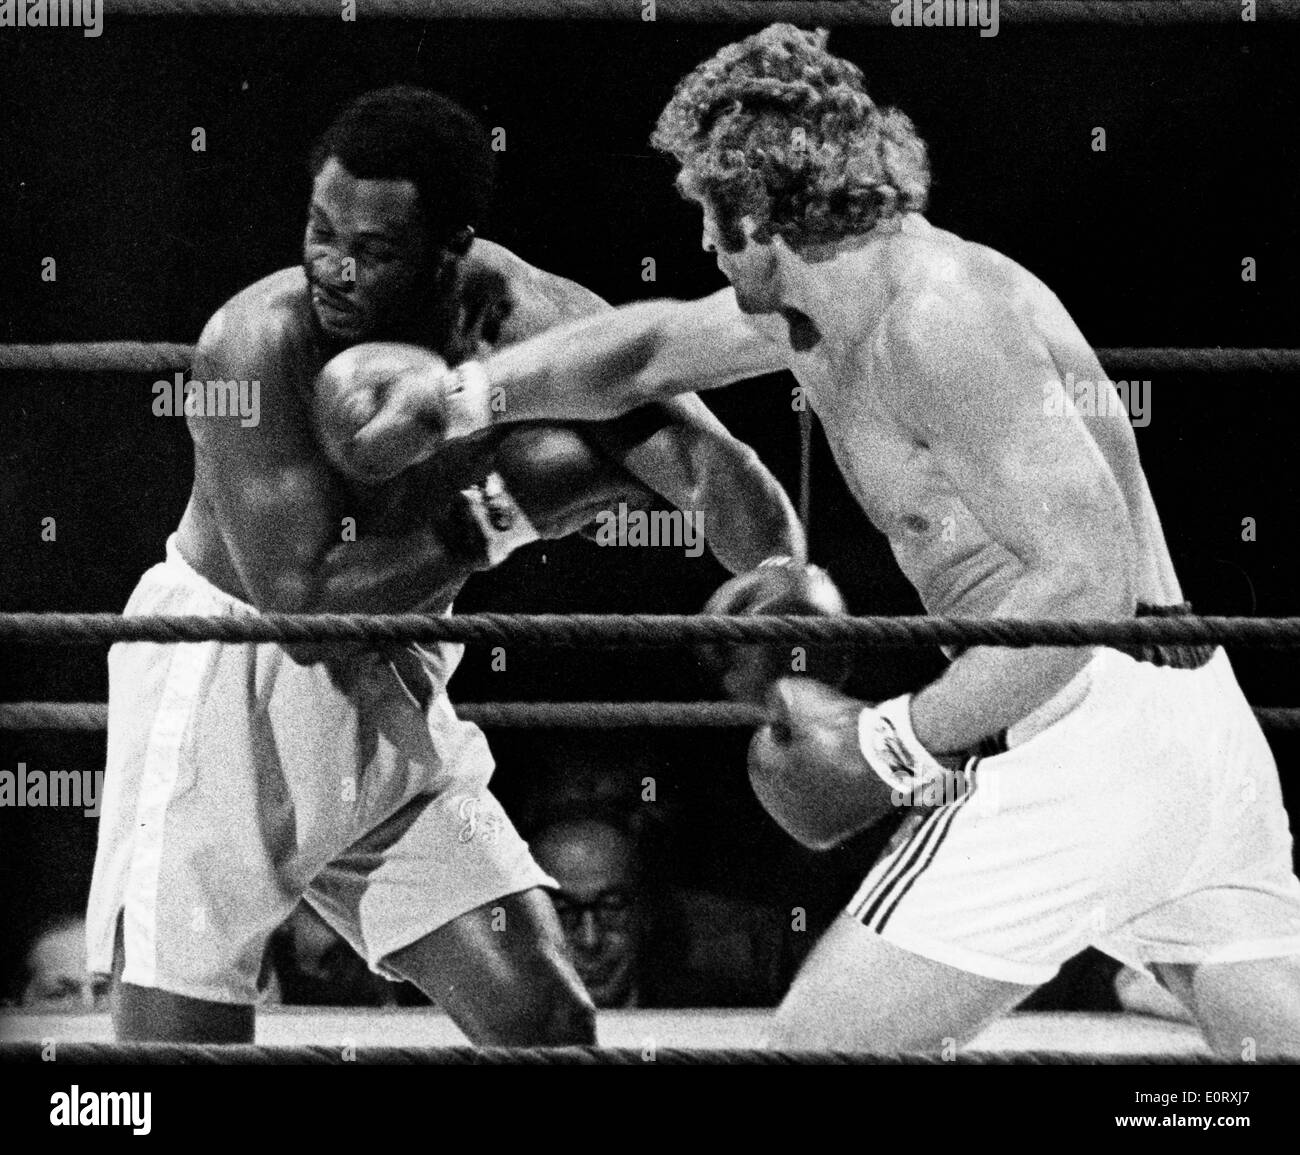 Smokin' Joe Frazier and Joe Bugner in a boxing match - Stock Image